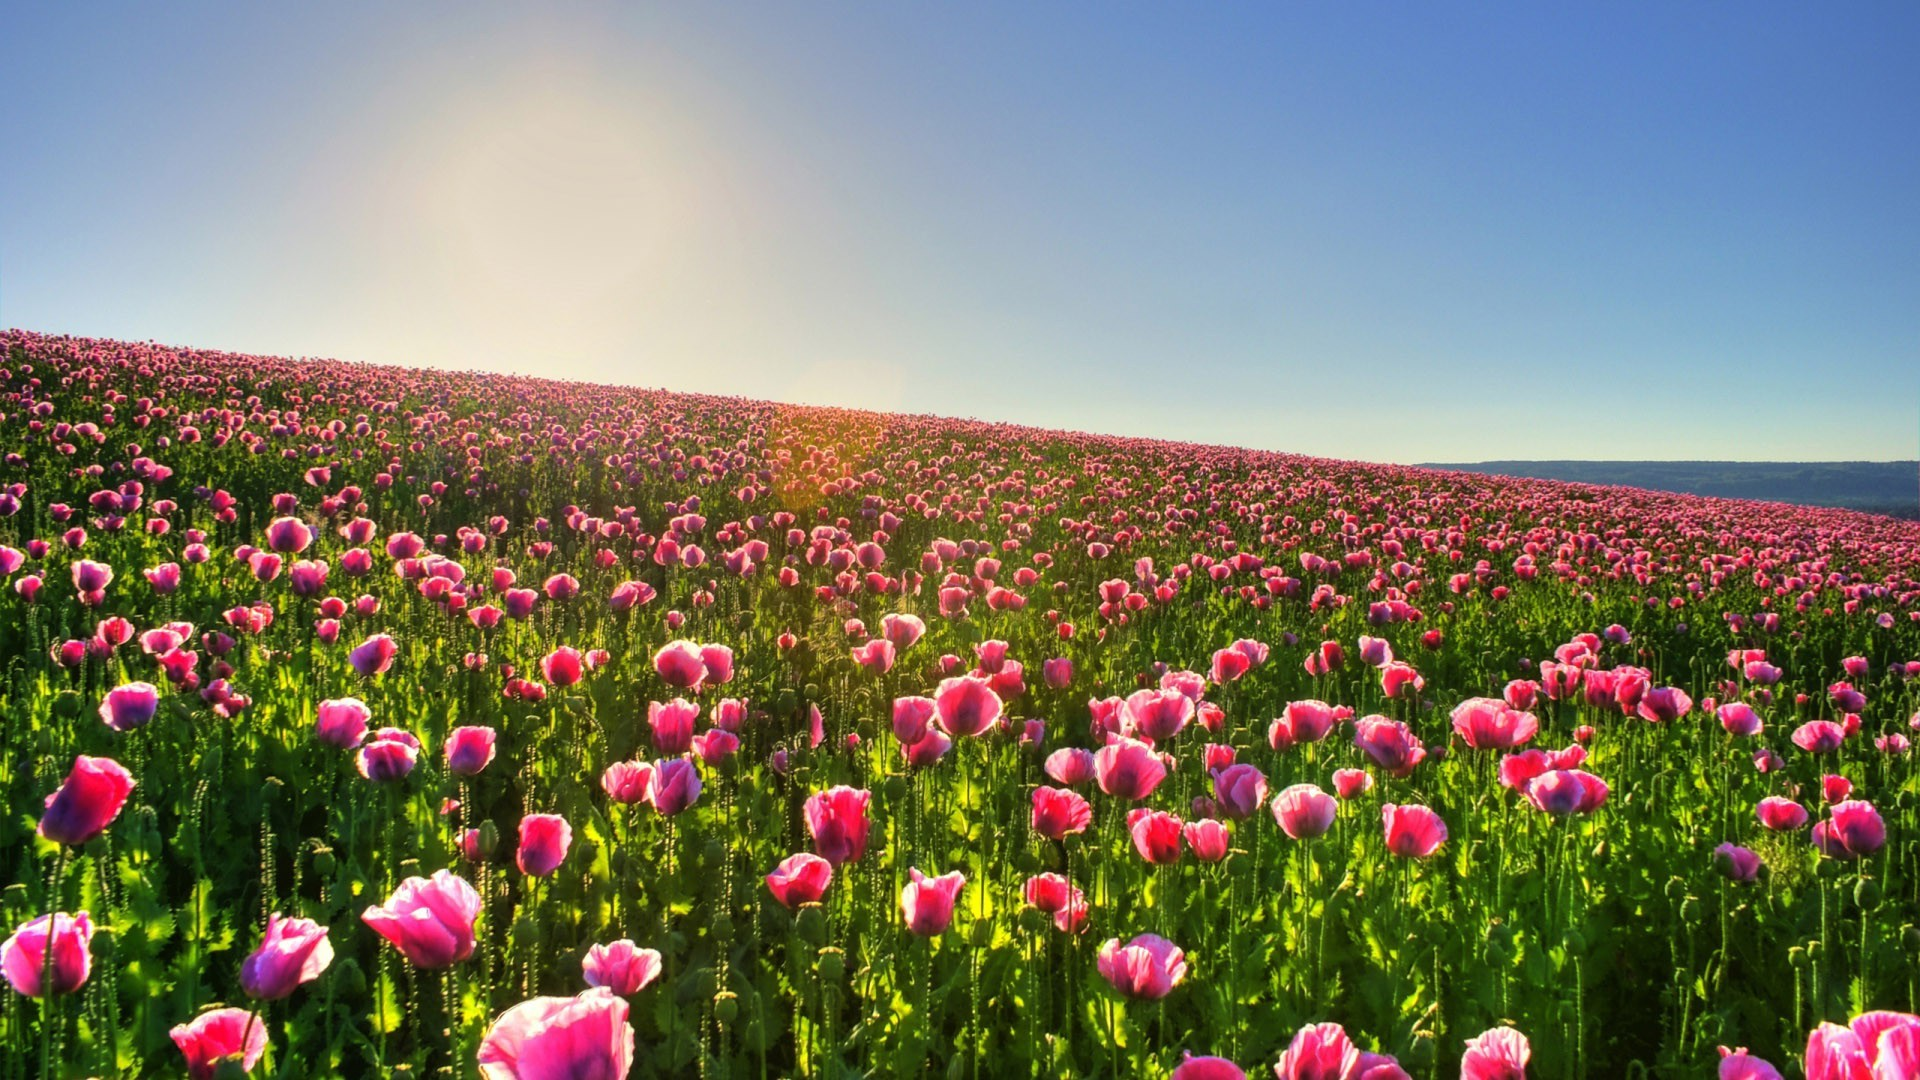 Tulip Fields 27 HD Image